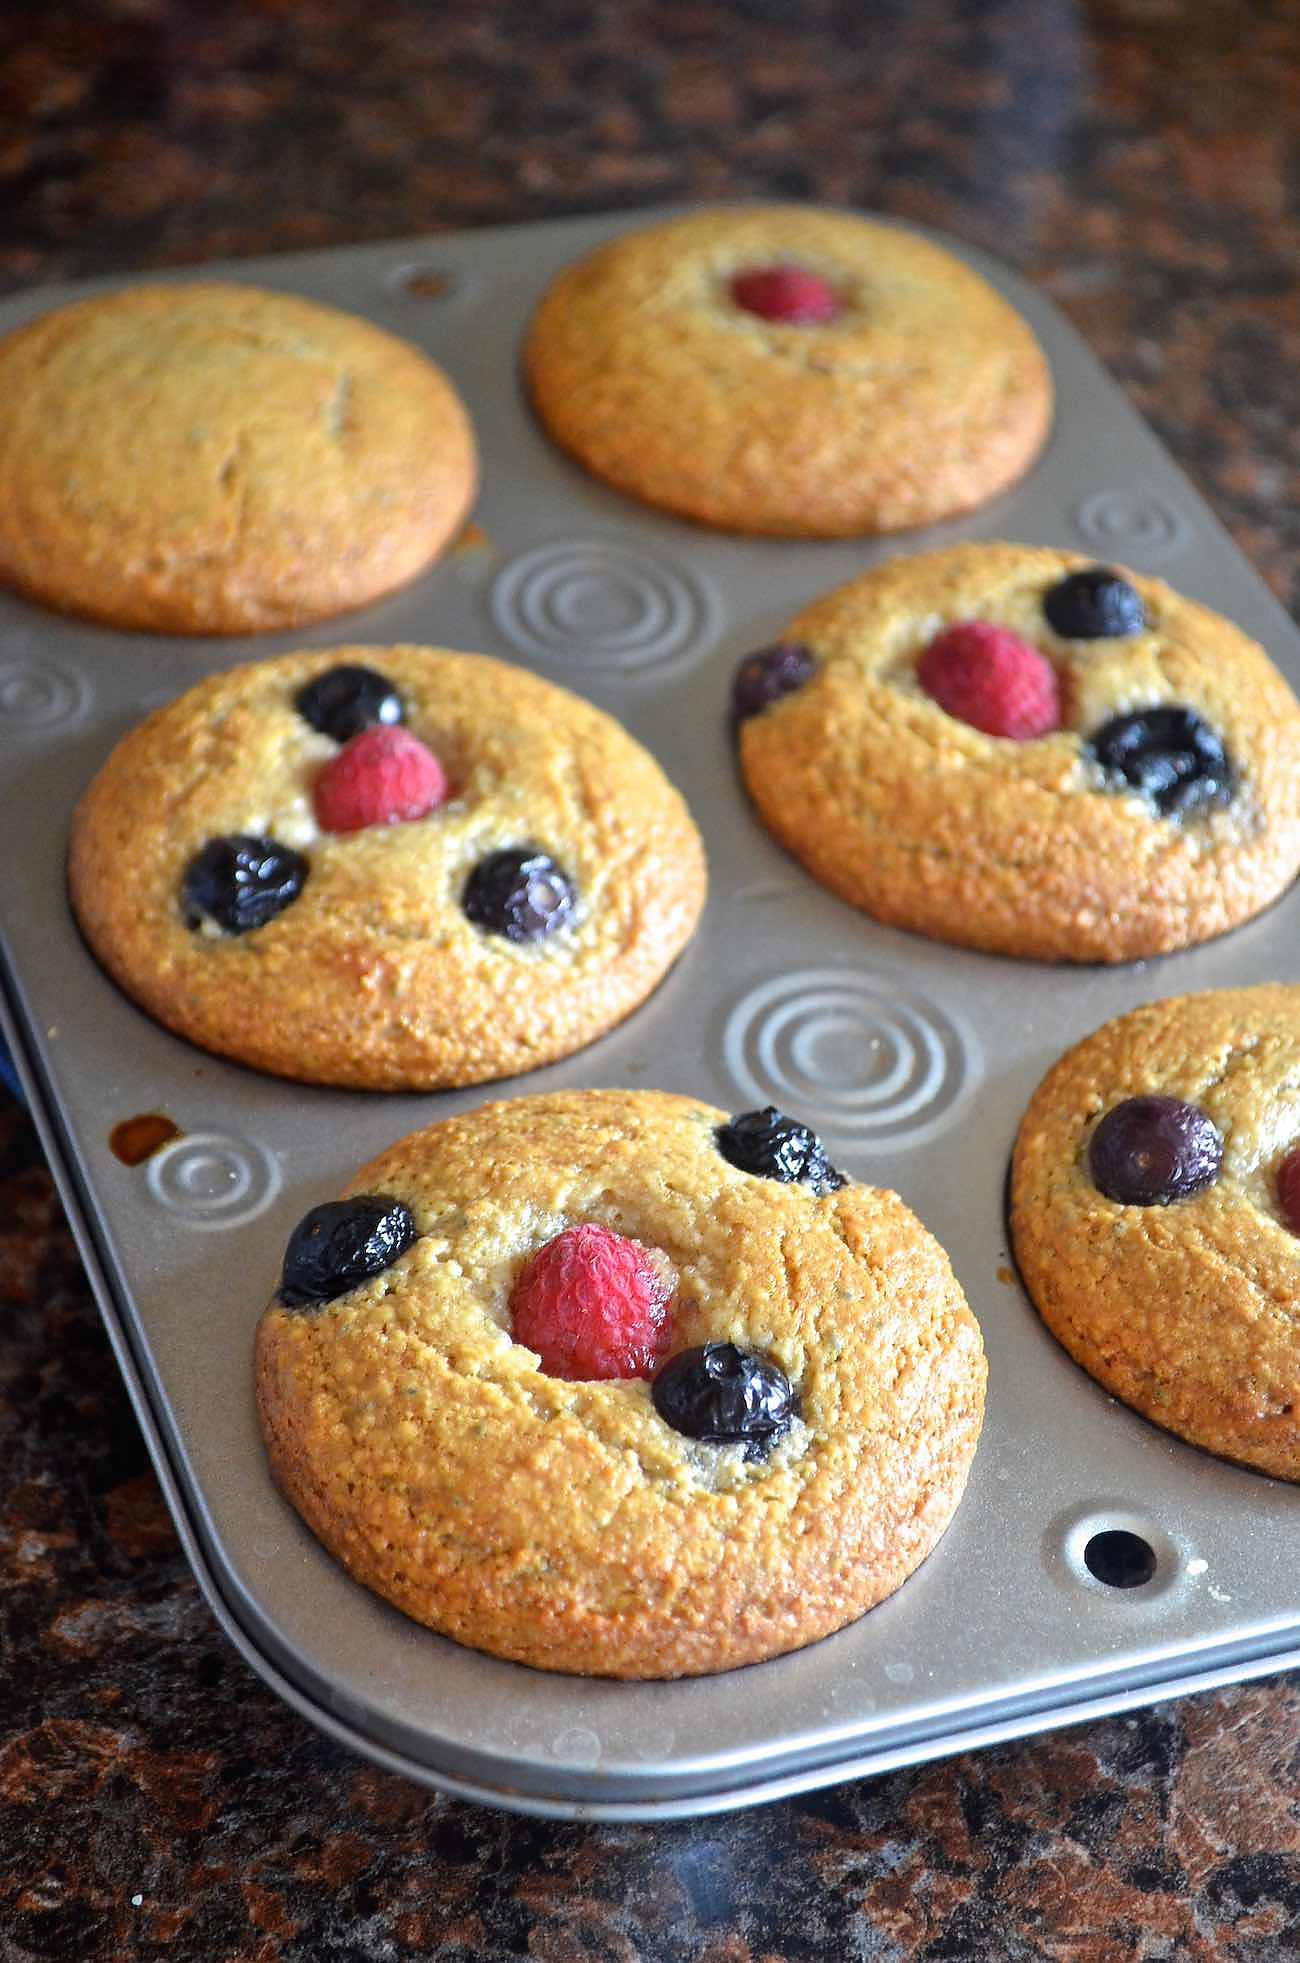 Almond Meal Muffins Recipe (Gluten Free and Grain Free)